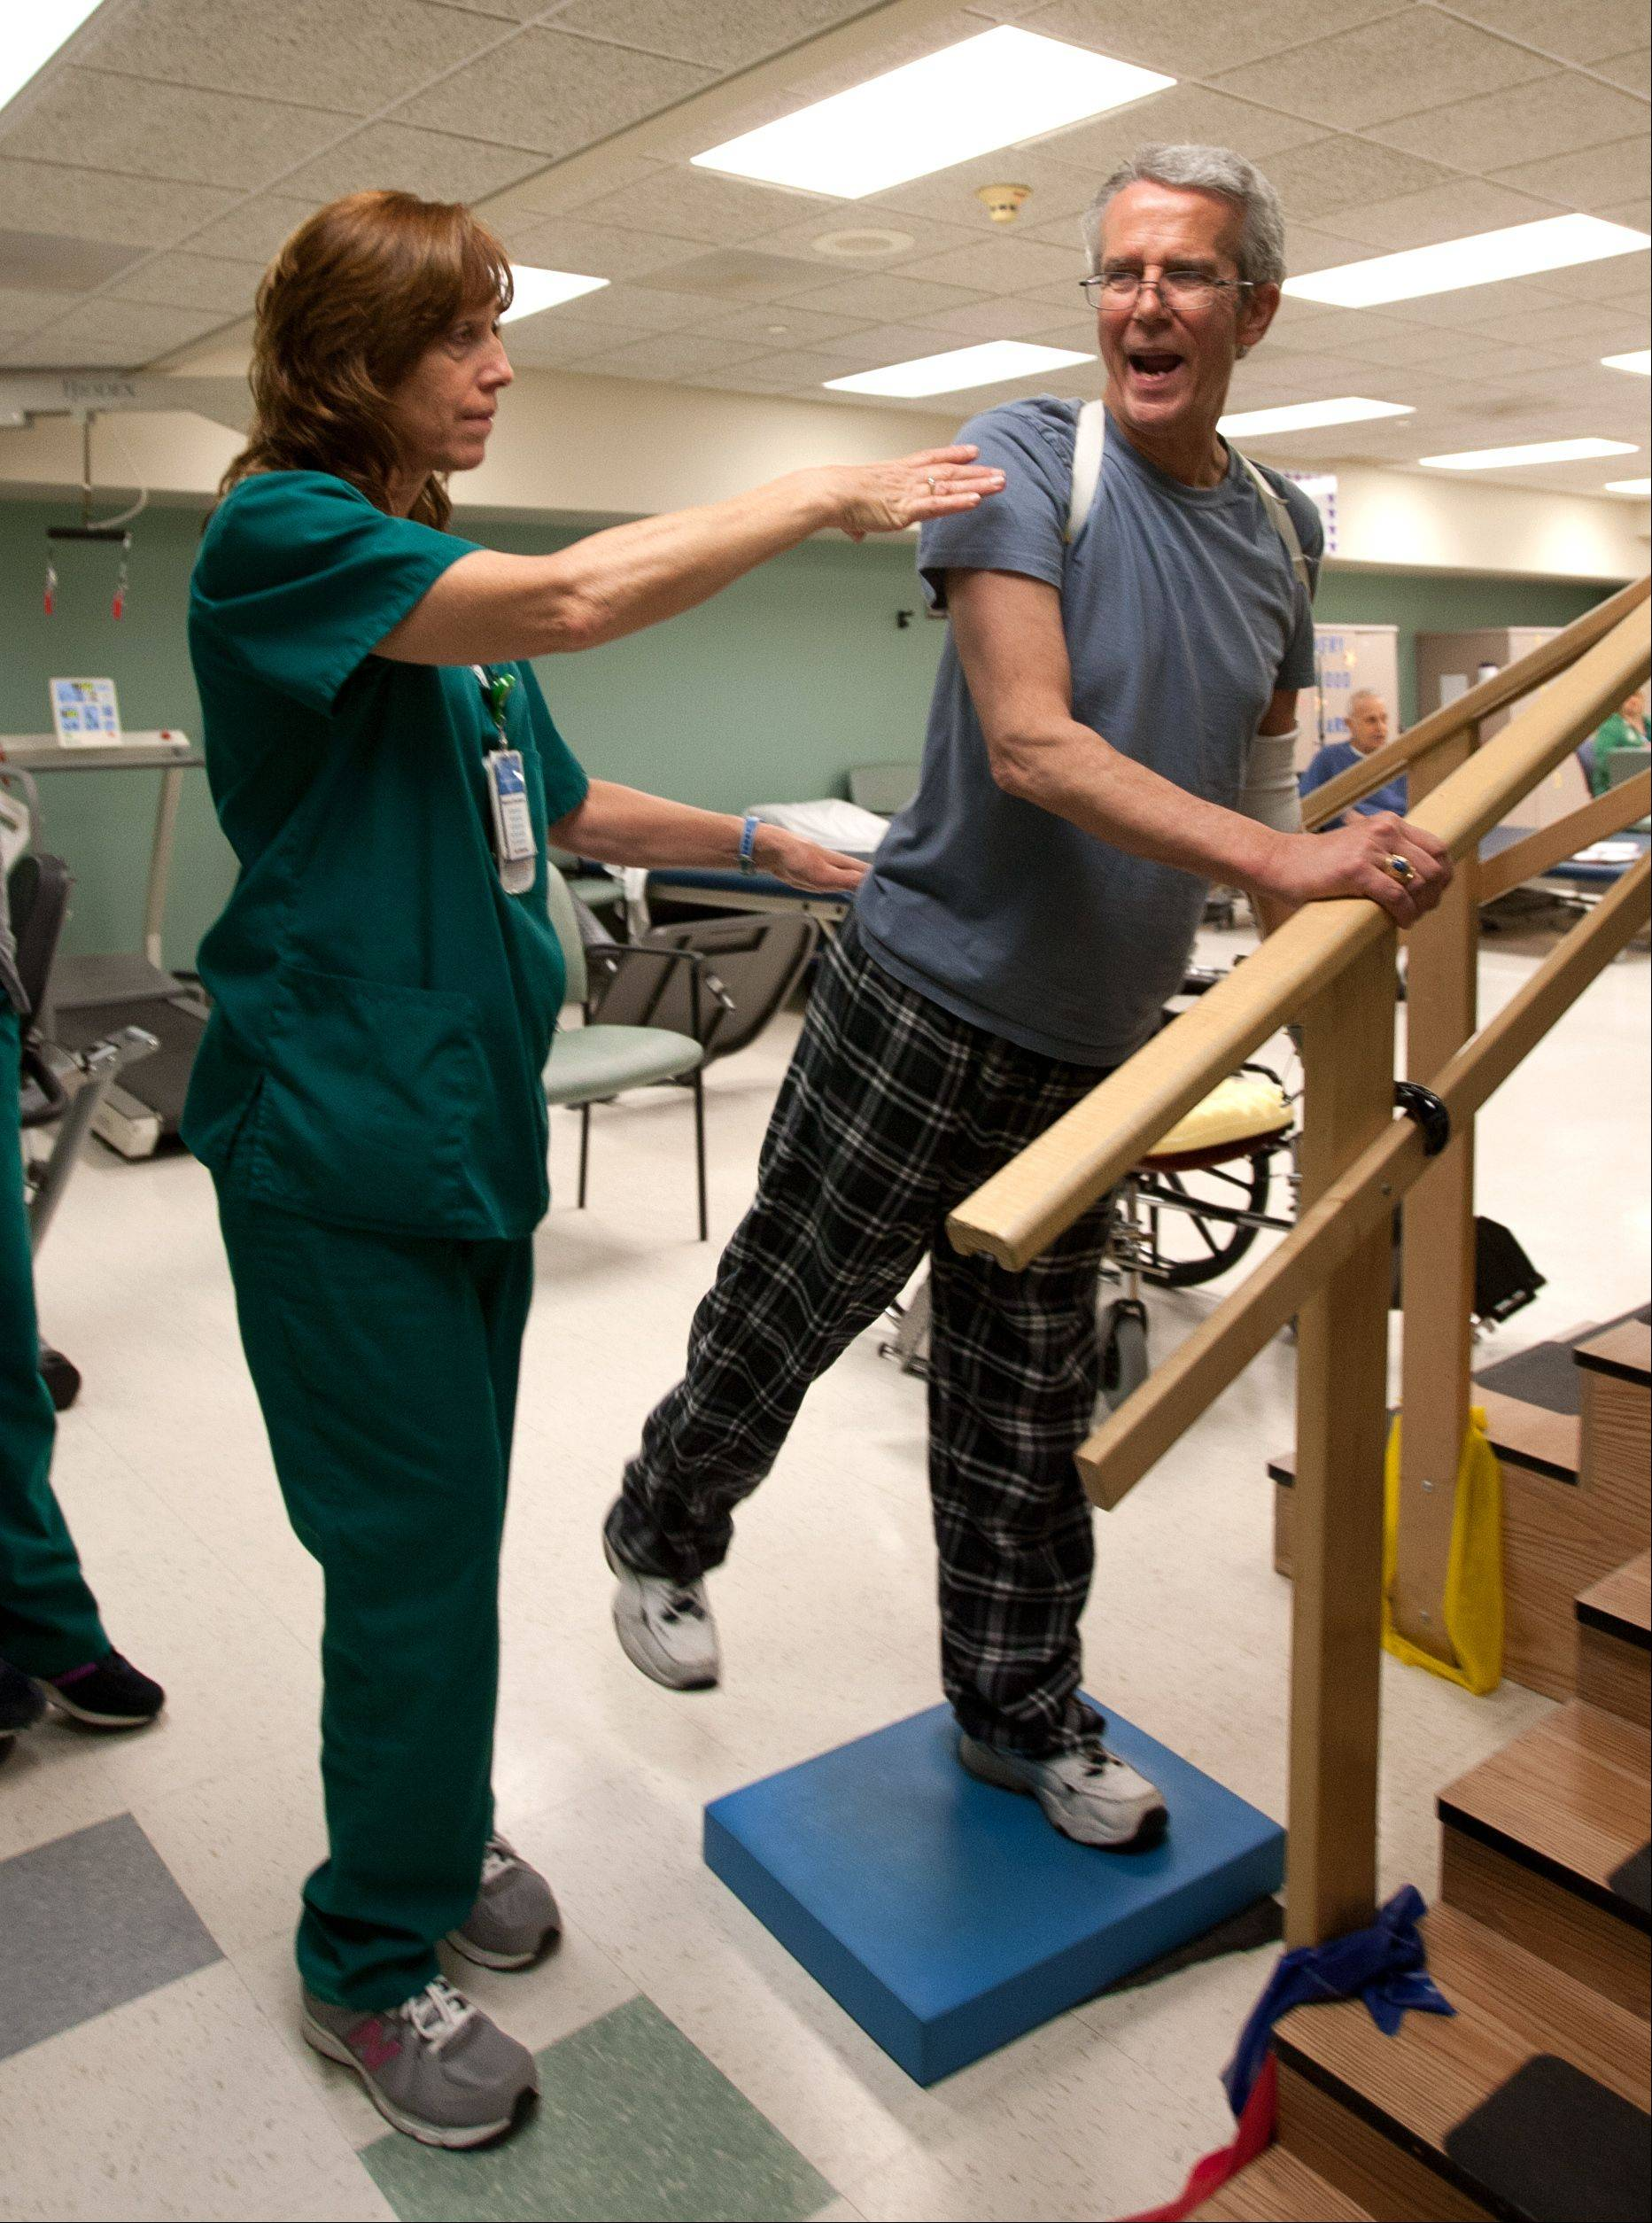 Carson works on his strength at the Advocate Christ Medical Center in Oak Lawn.